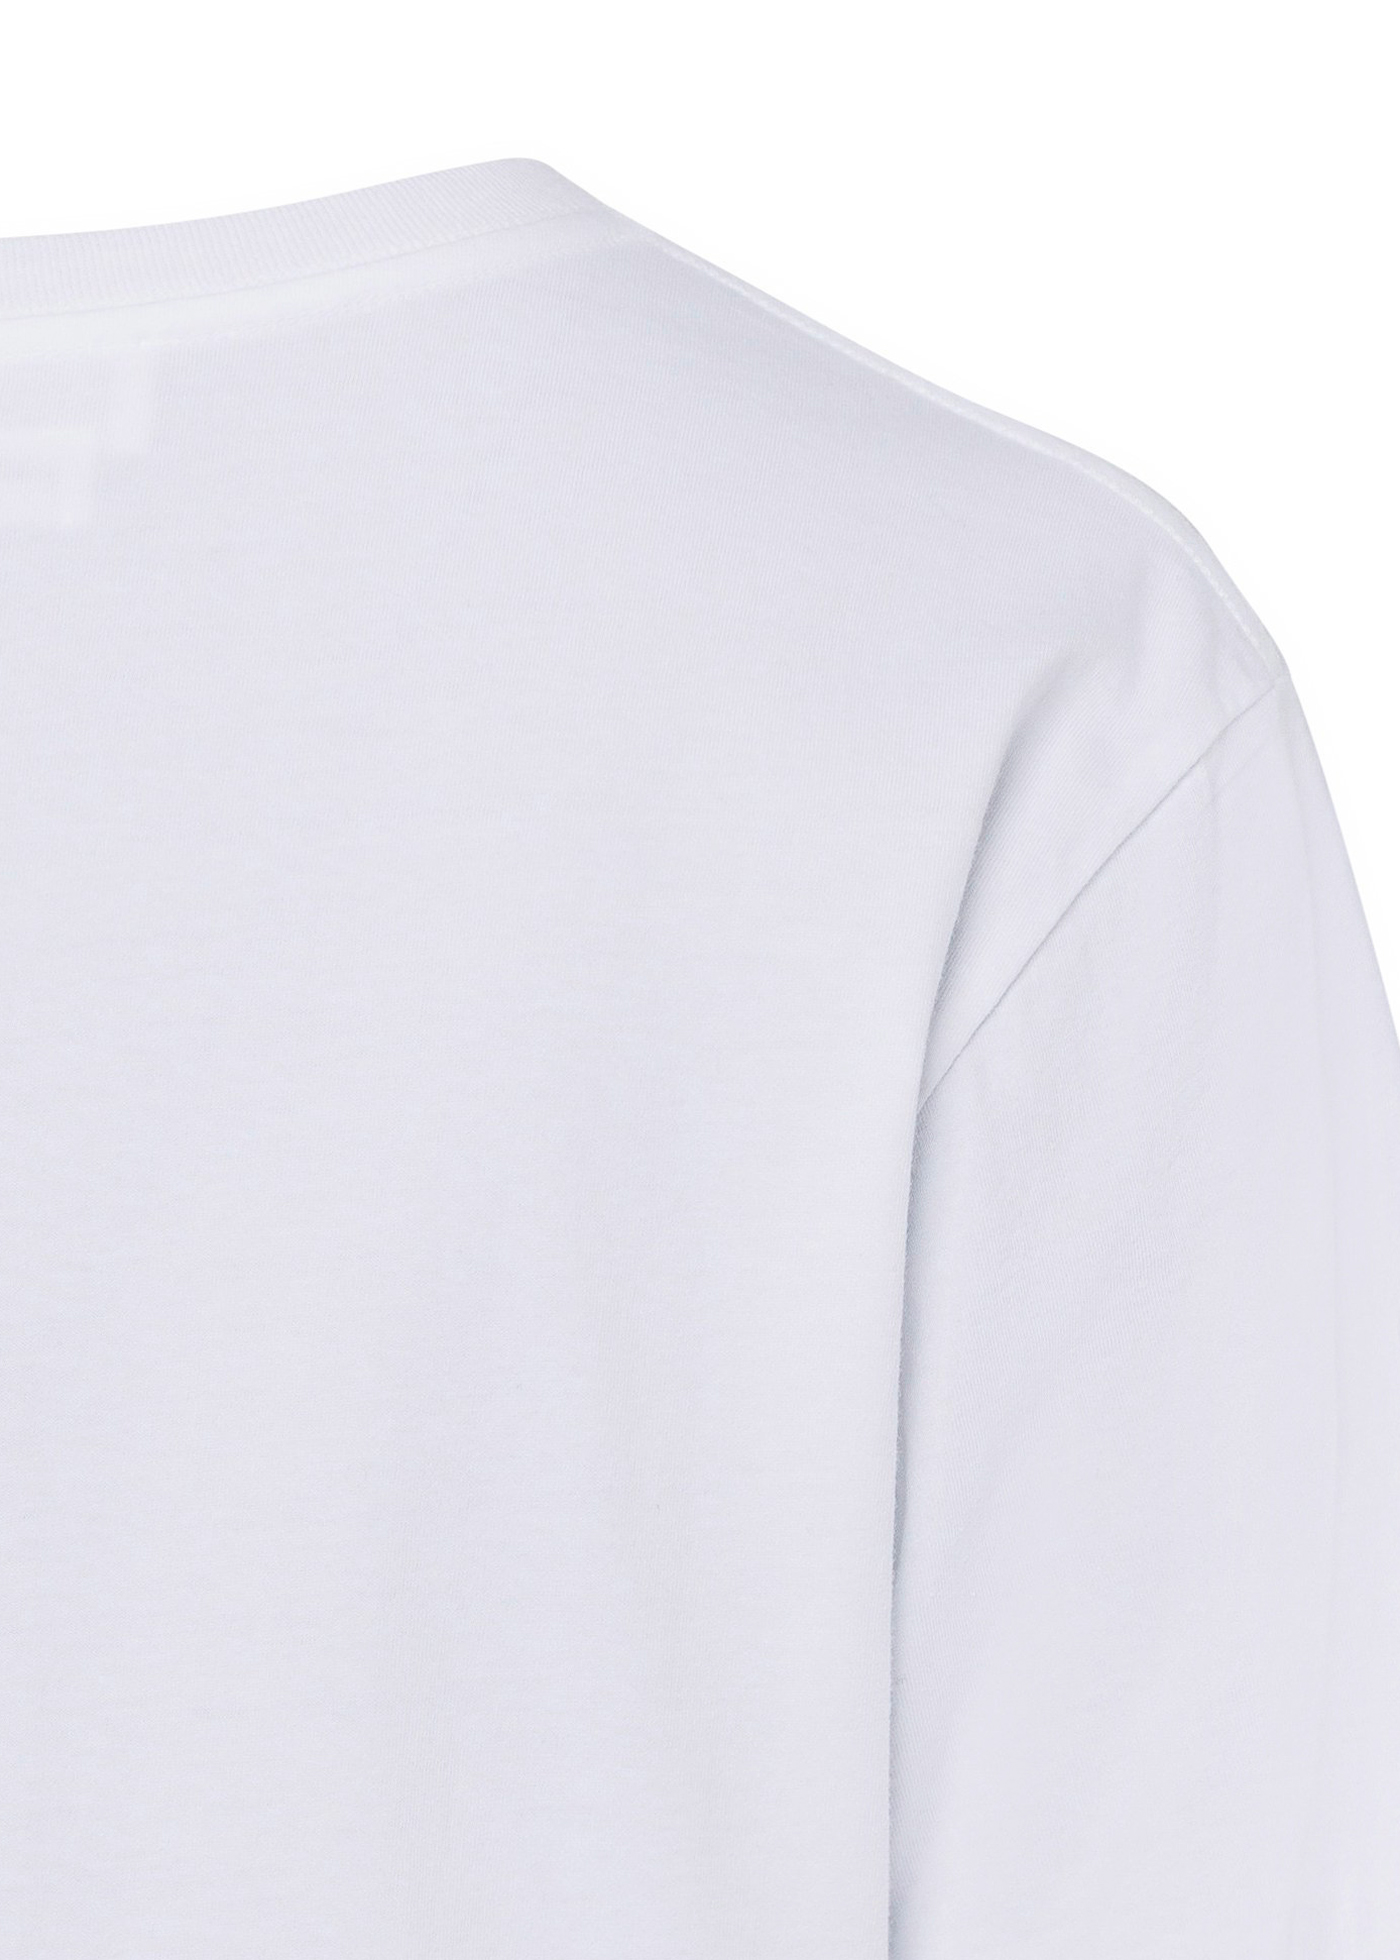 Aster Tee image number 3